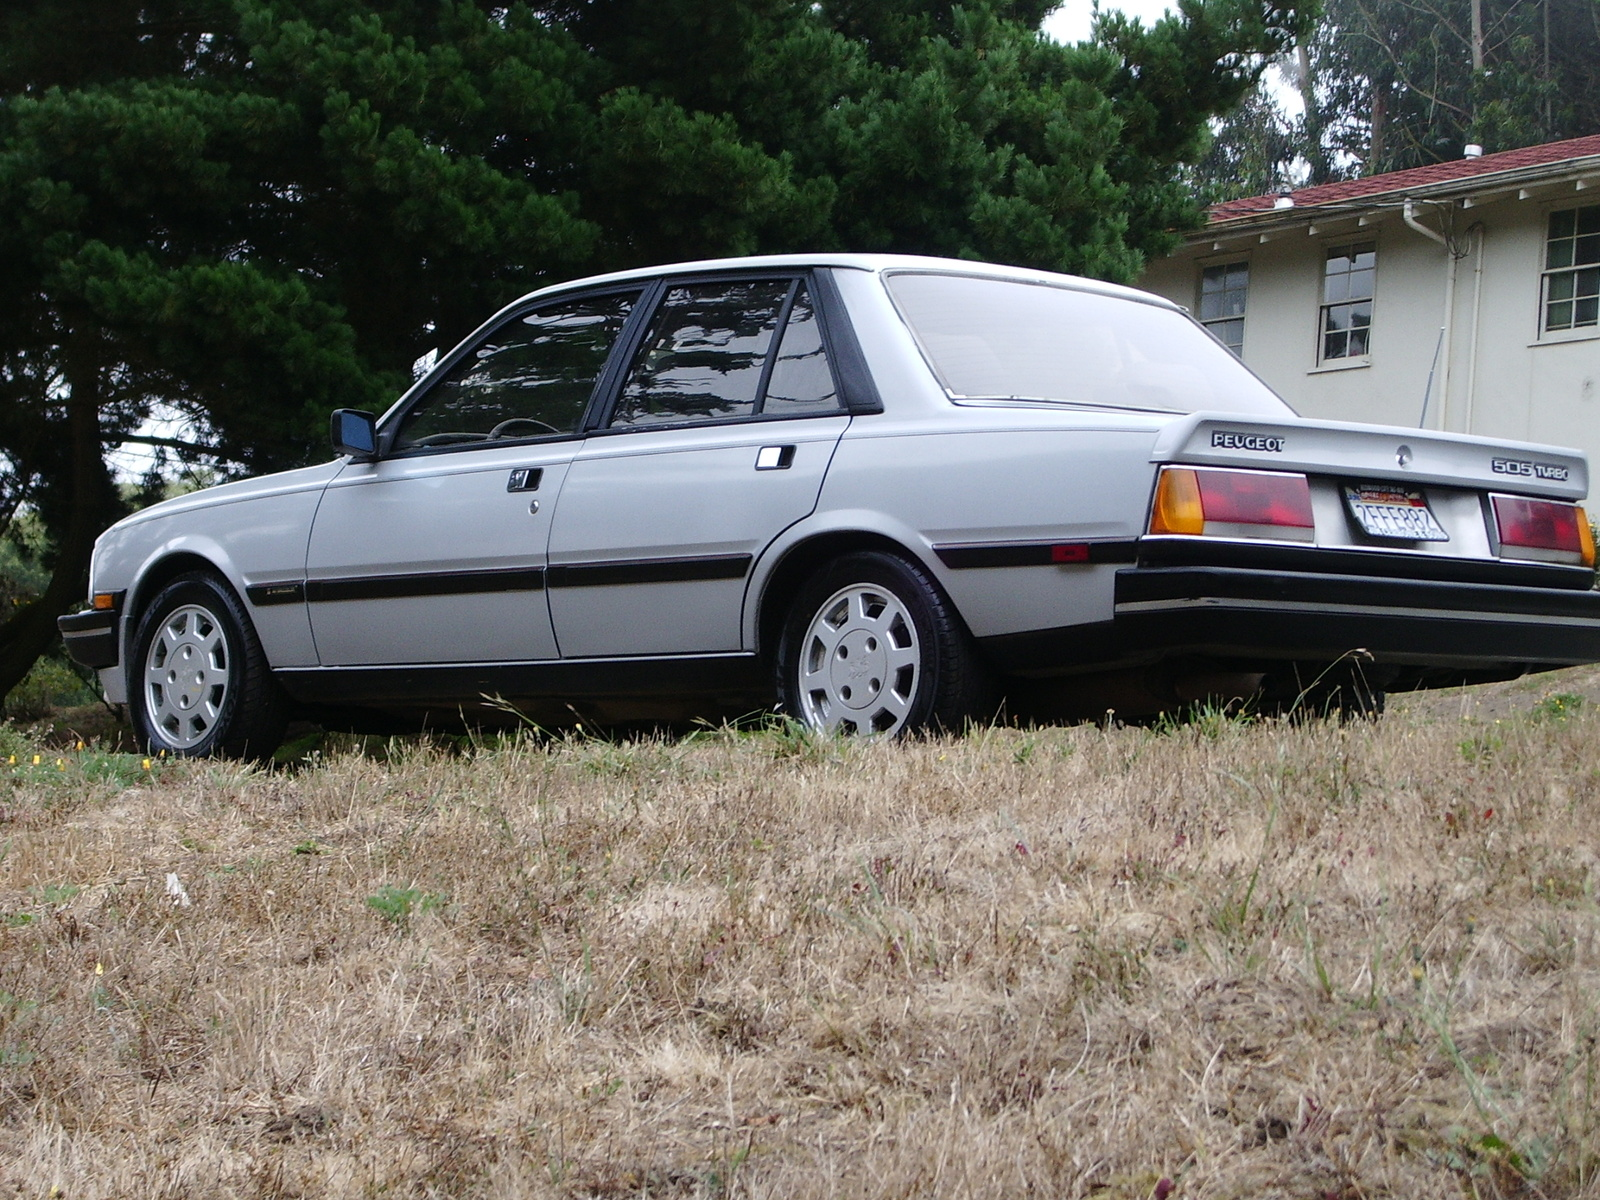 File:1987 Peugeot 505 Turbo S, left front (US).jpg - Wikimedia Commons